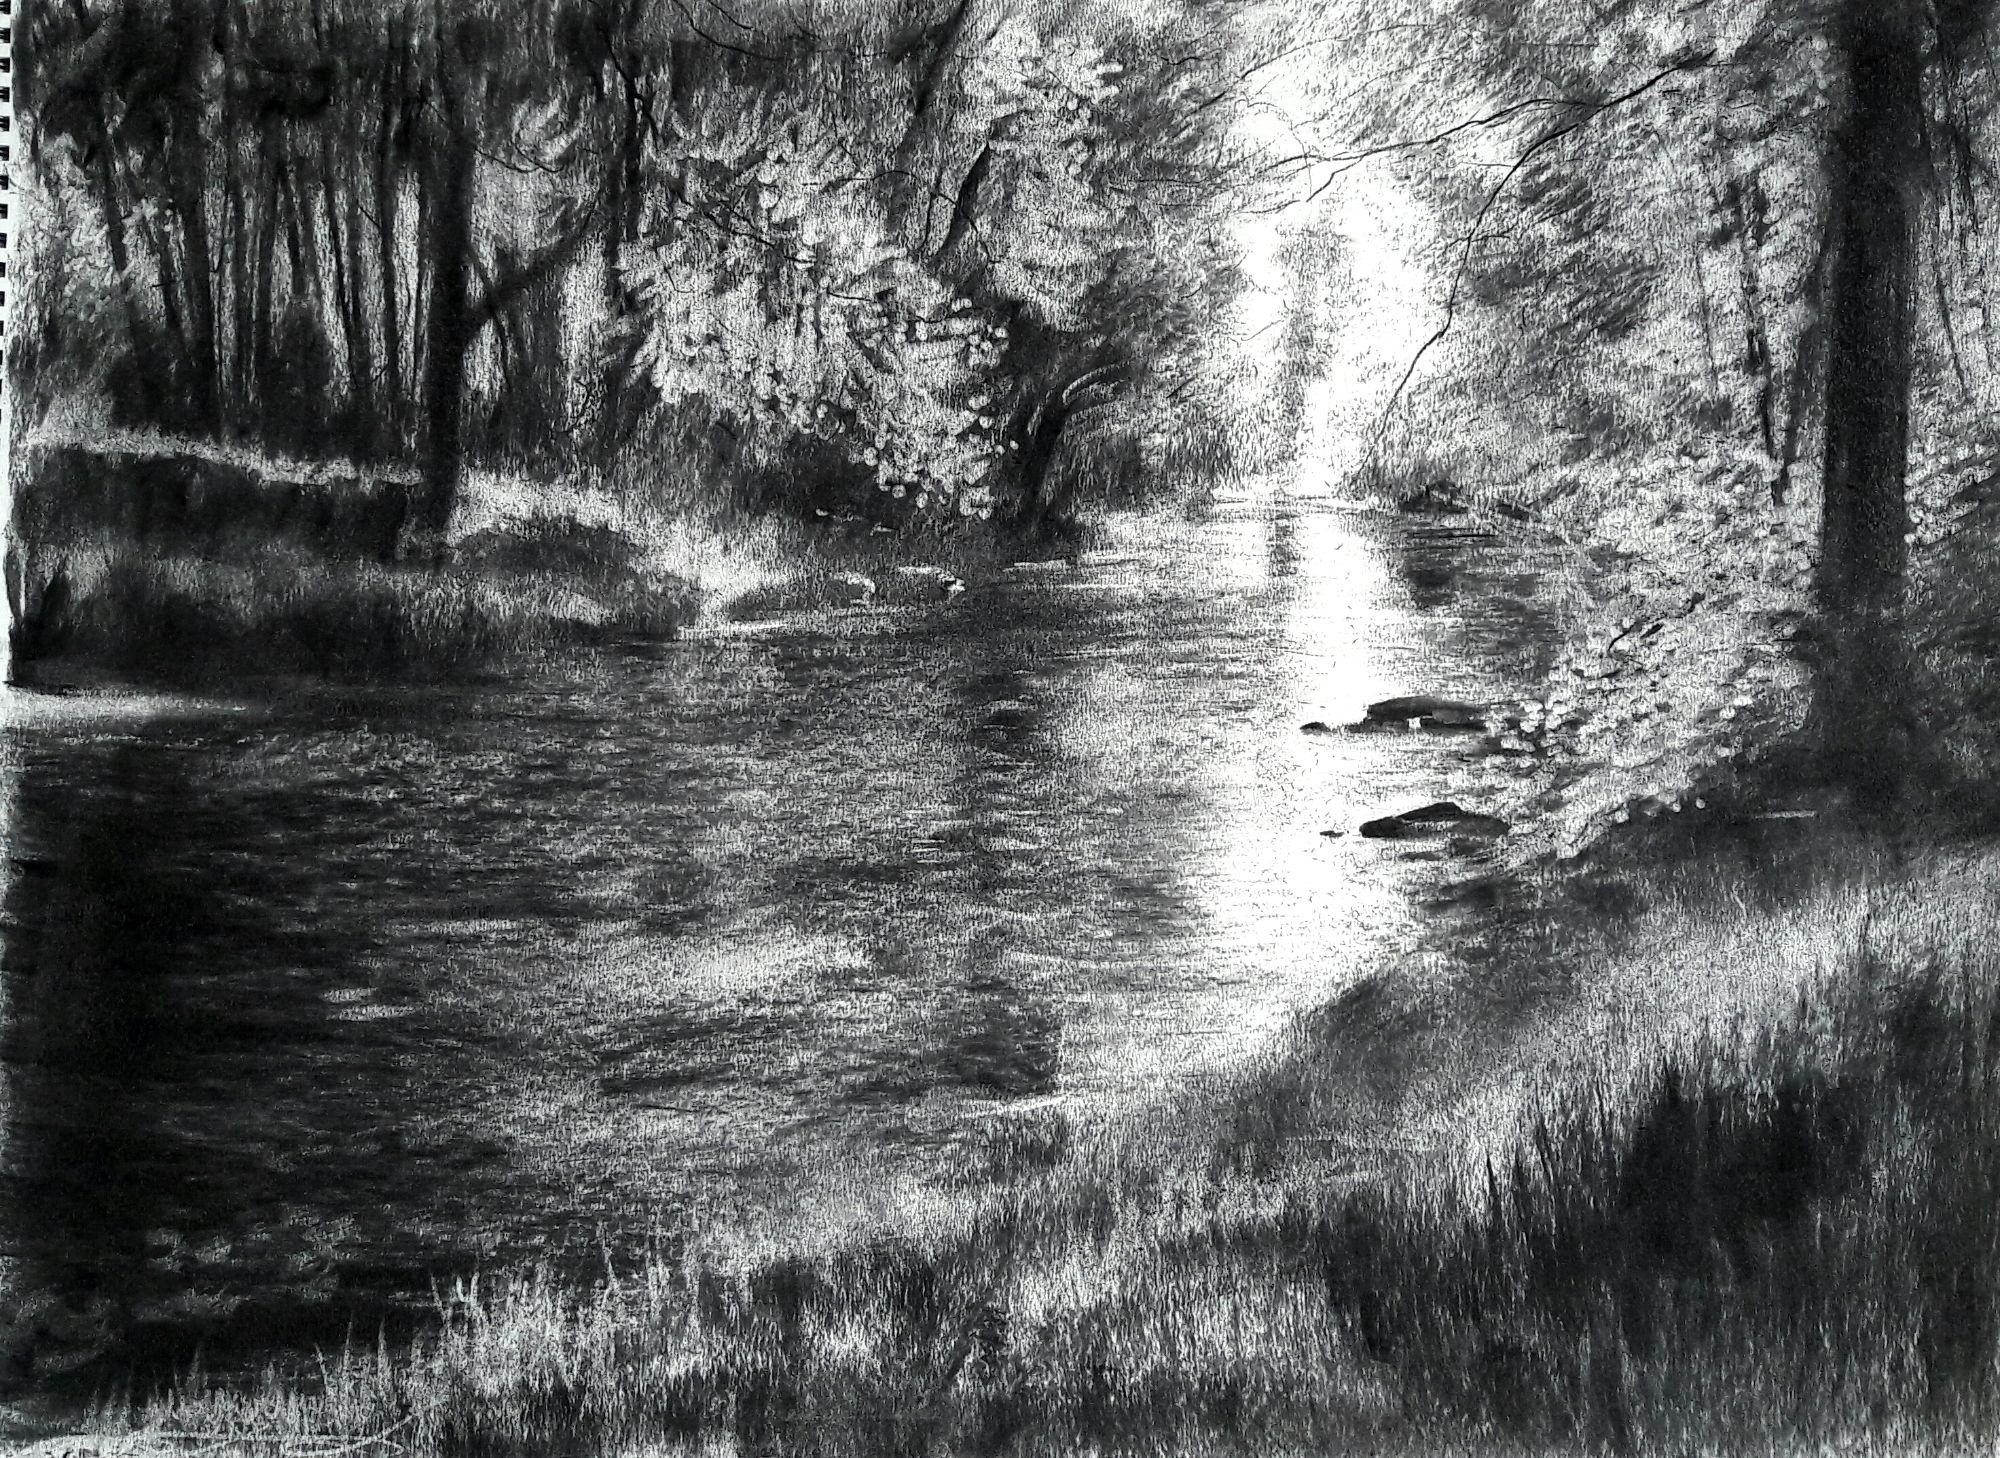 Hembury Woods #4 - Charcoal on cartridge paper (420 x 594 mm)